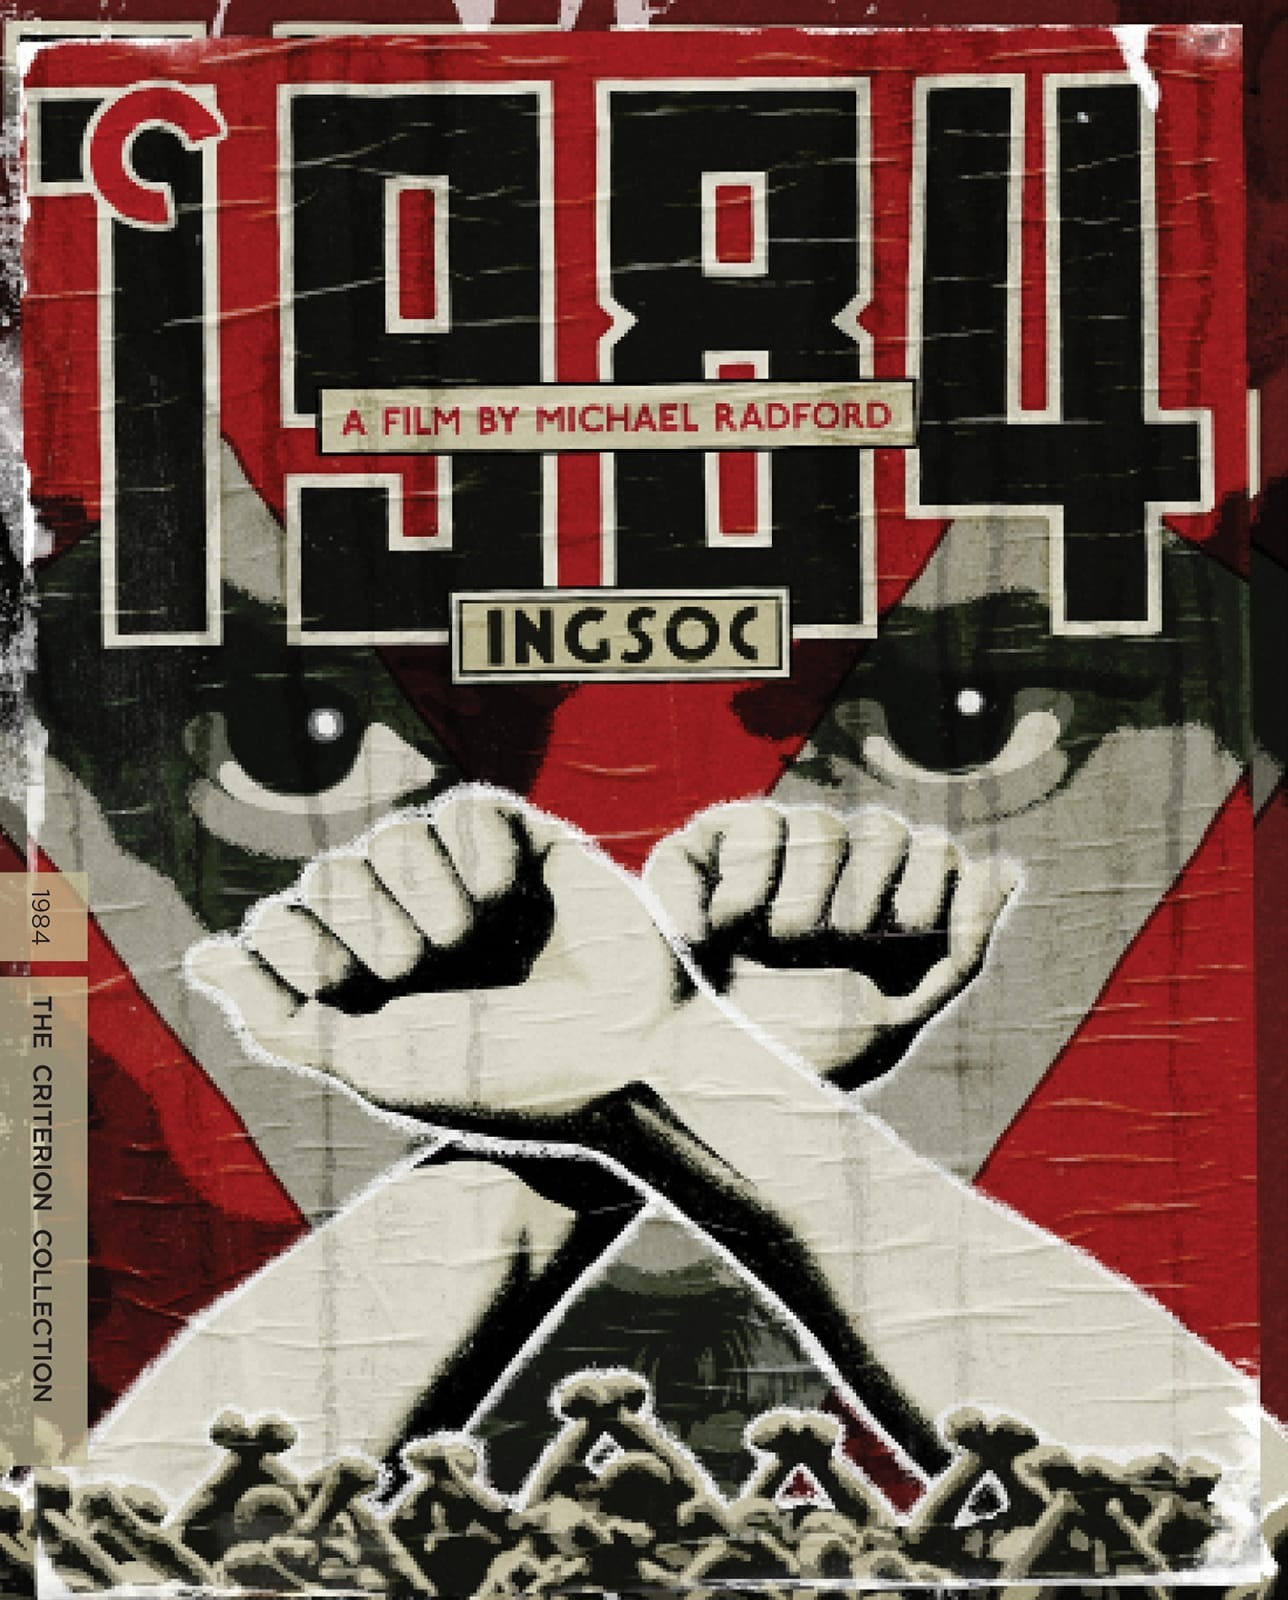 1984 (The Criterion Collection)(Blu-ray)(Region A)(Pre-order / Jul 23)